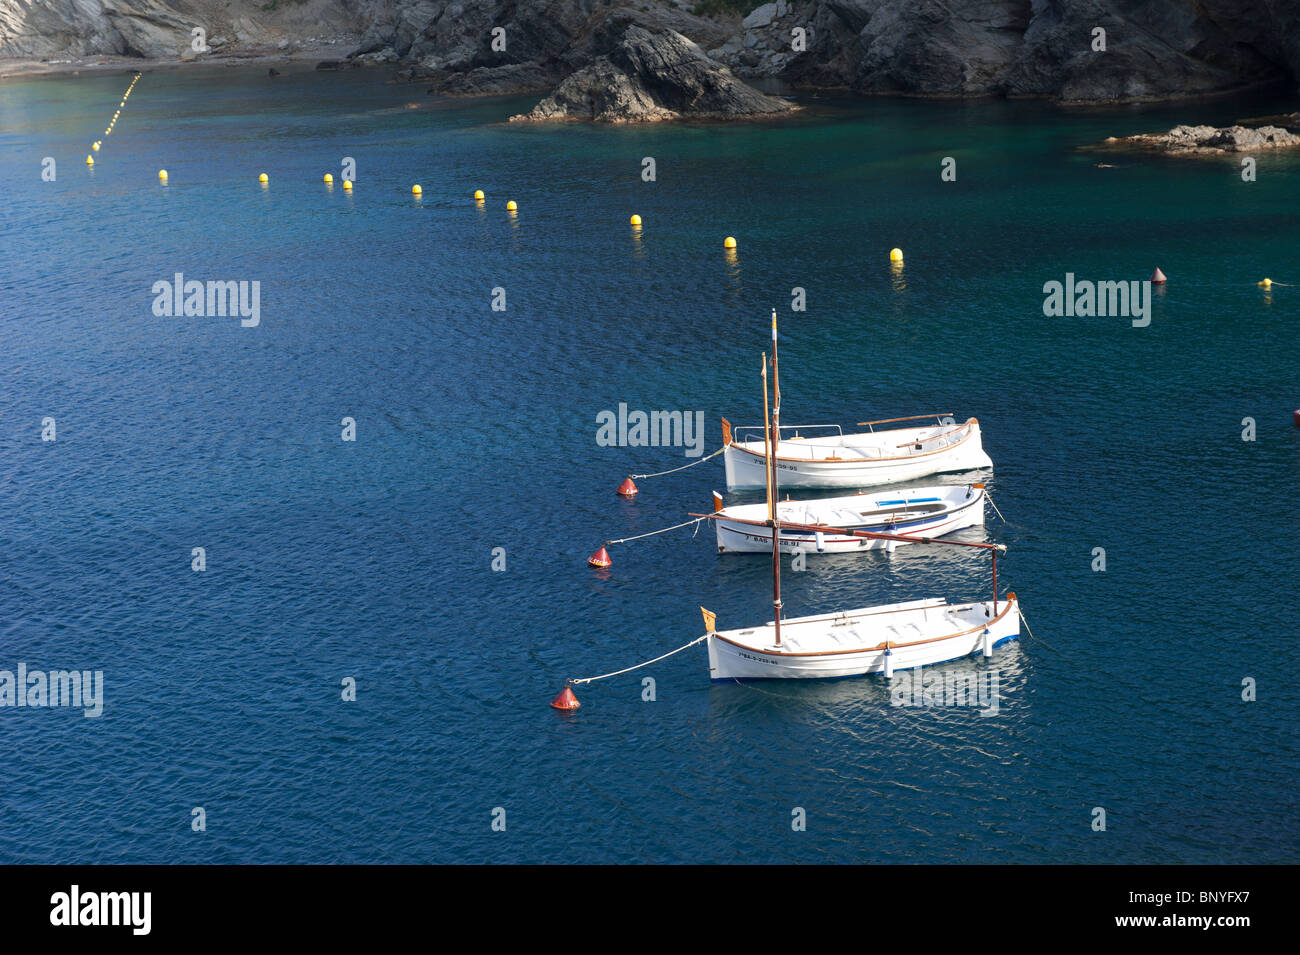 Fishing boats anchored in the middle of the sea, Cadaques, Girona, Spain. - Stock Image